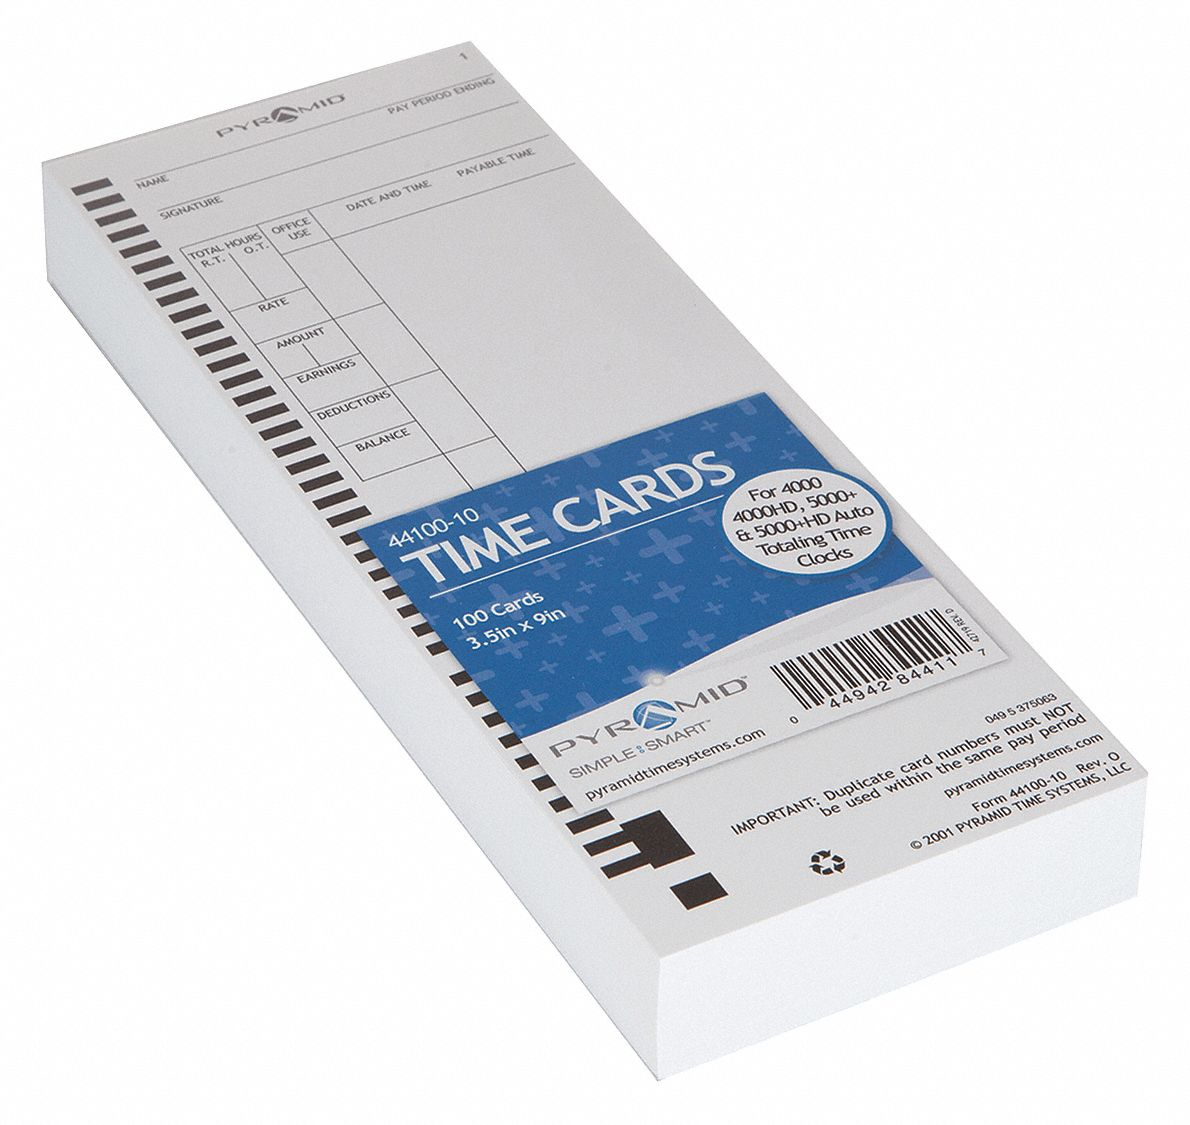 Time Card, Records Date, Time, Total Hours Worked, 9 in Height, 3 1/2 in Width